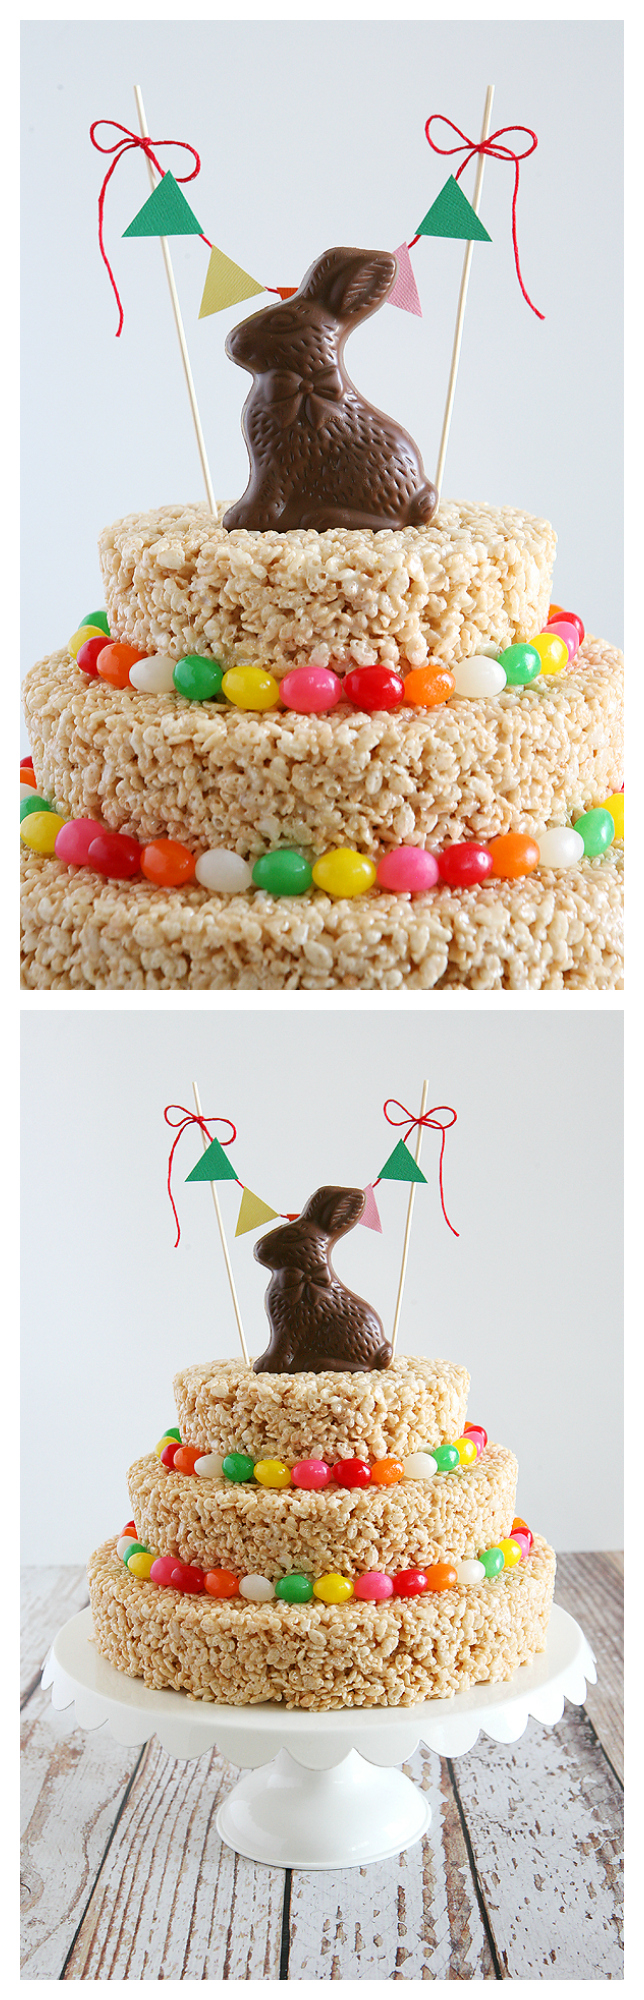 Easter Rice Krispies Treat Cake | Easter Treats